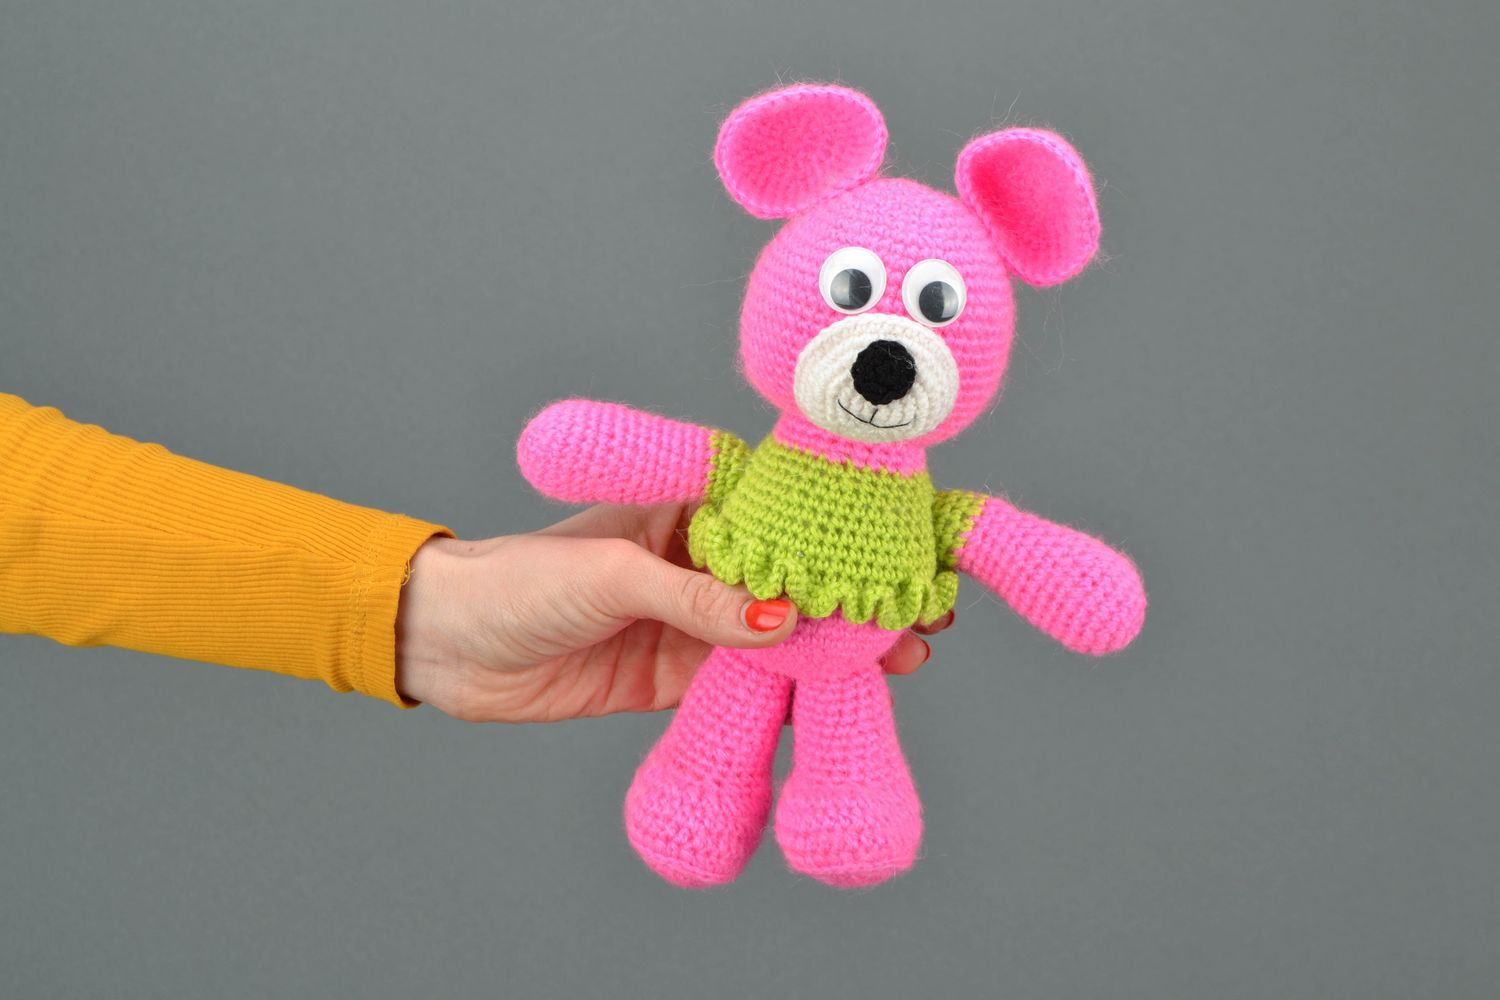 knitted toys Soft crochet toy Pink Bear in Jacket - MADEheart.com